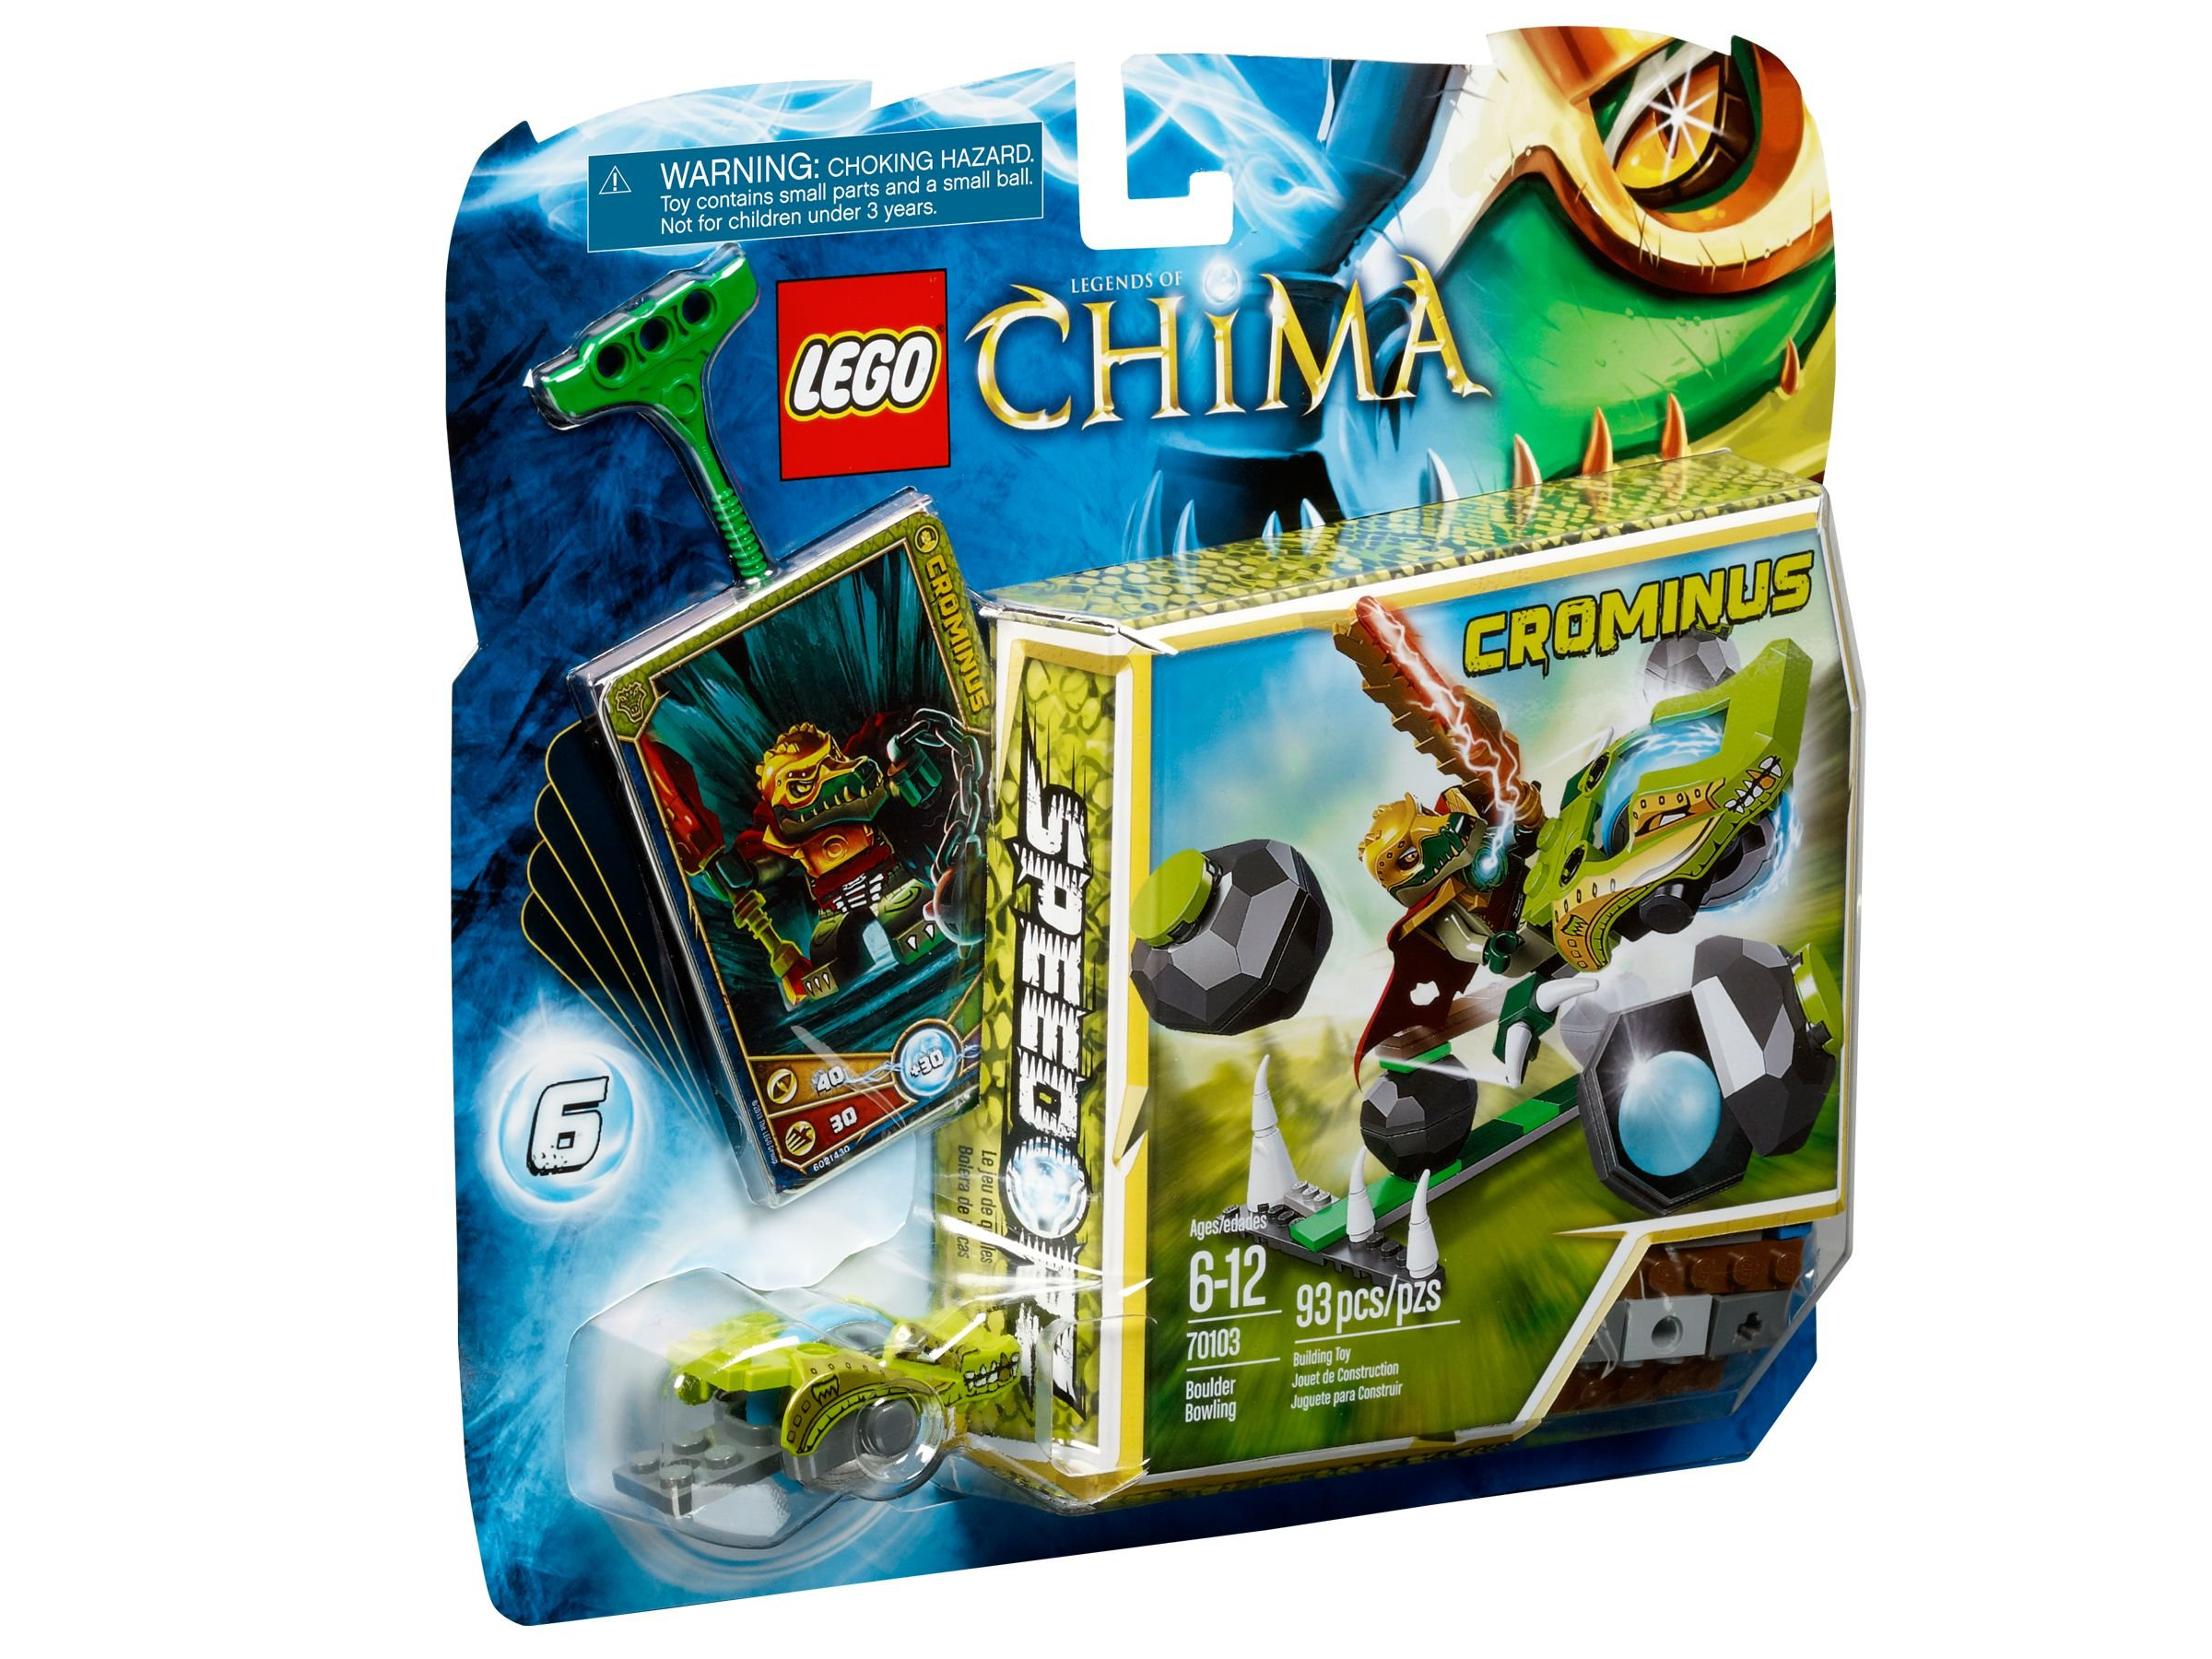 LEGO Legends Of Chima 70103 Felskegeln LEGO_70103_alt1.jpg